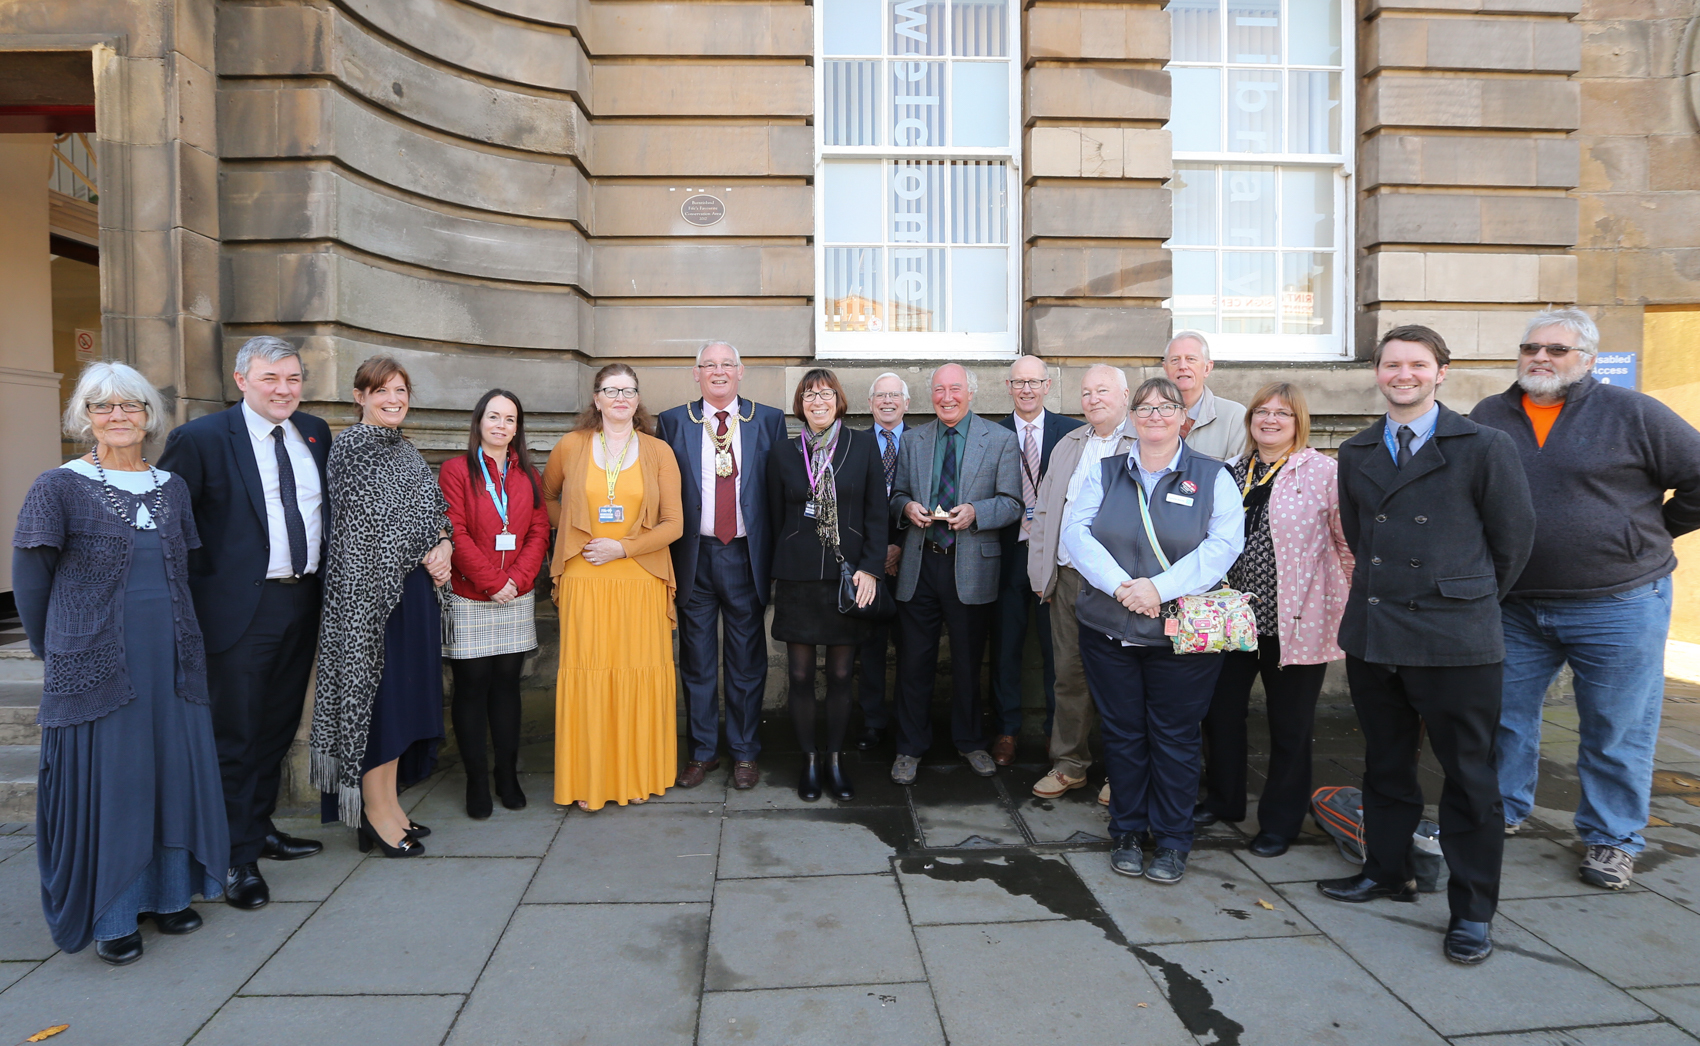 Local dignitaries gathered to mark Burntisland's status as Fife's favourite conservation area.